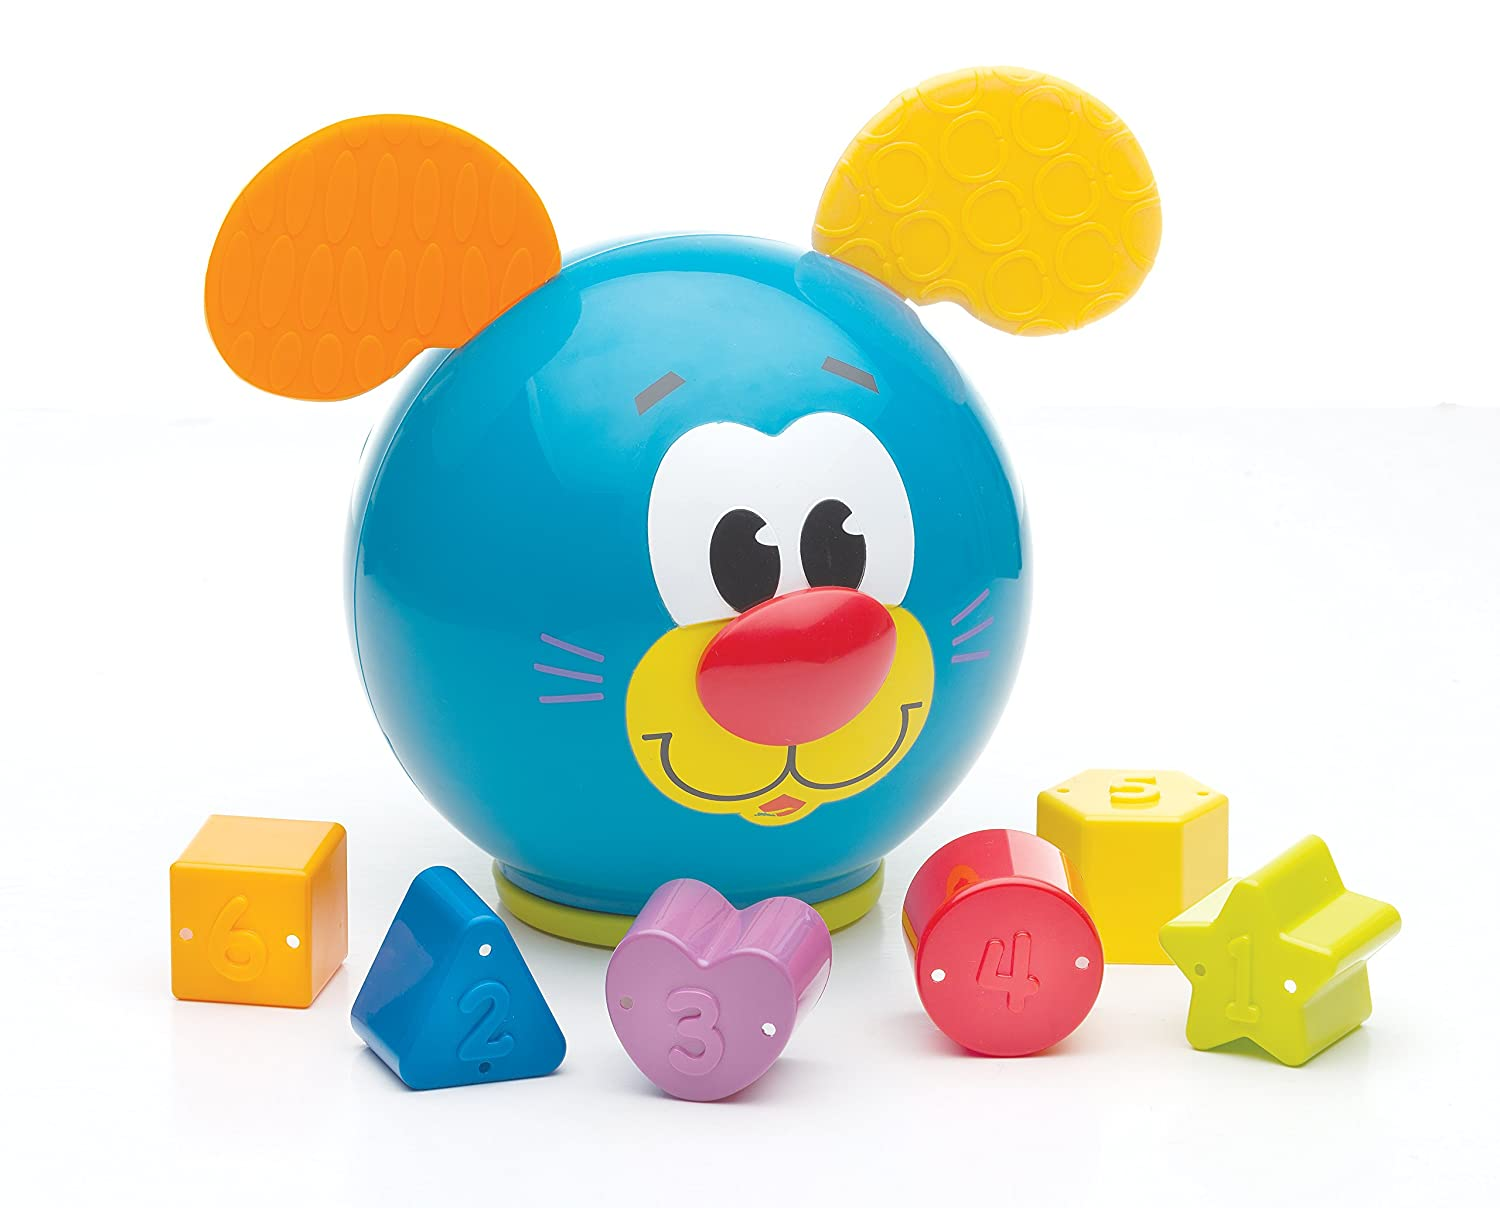 Playgro Puppy Shape Sorter GN for baby infant toddler children 6384021 Playgro is Encouraging Imagination with STEM//STEM for a bright future Great start for a world of learning Playgro USA